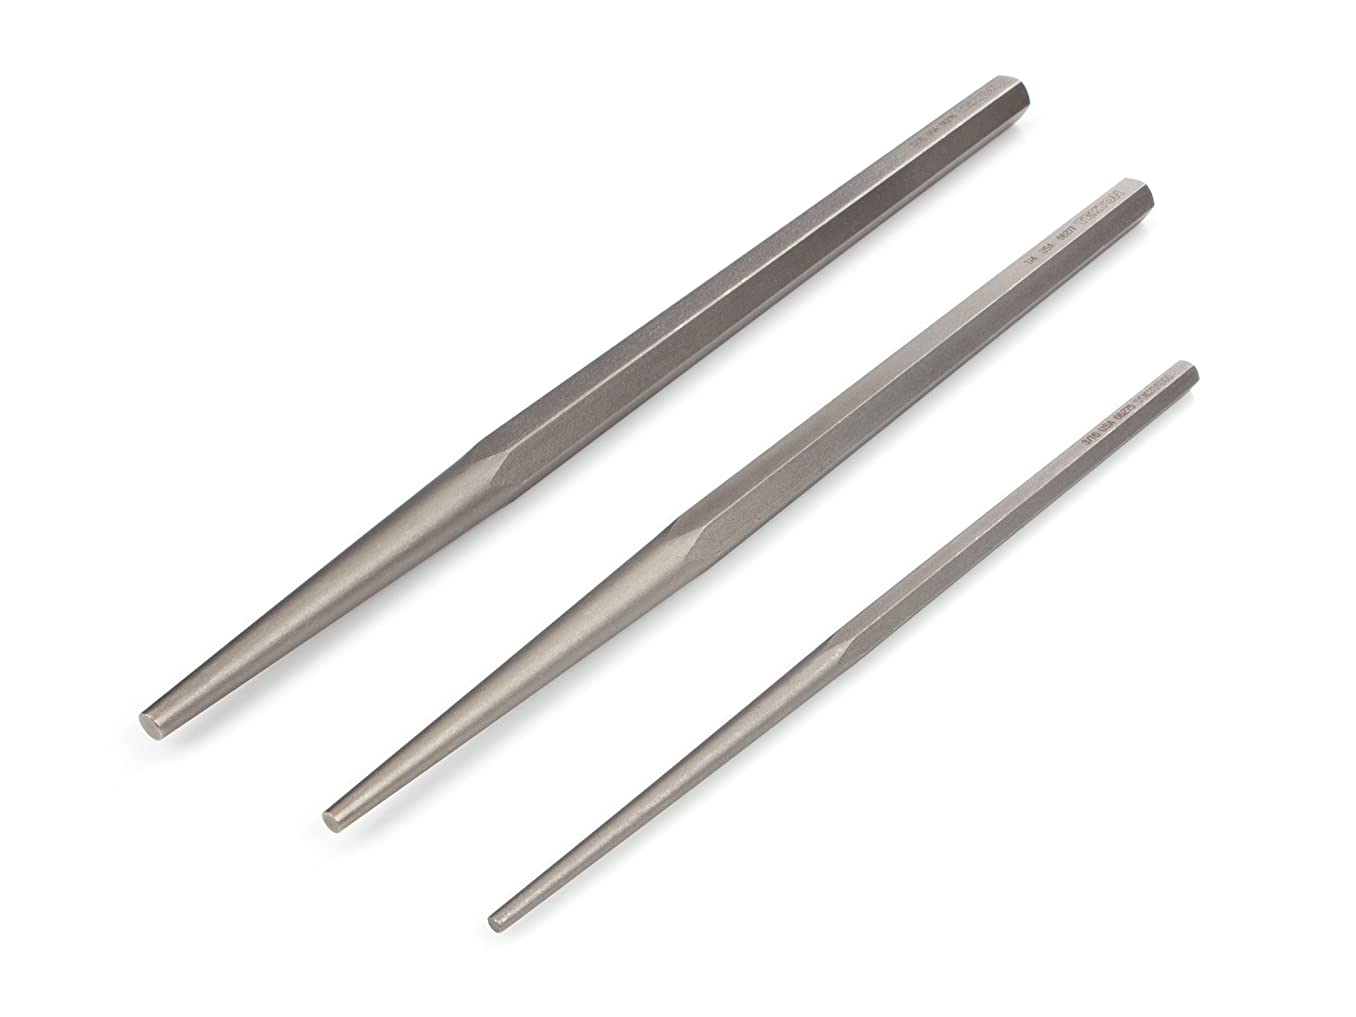 TEKTON Long Alignment Punch Set, 3-Piece (3/16, 1/4, 5/16 in.) | 66556